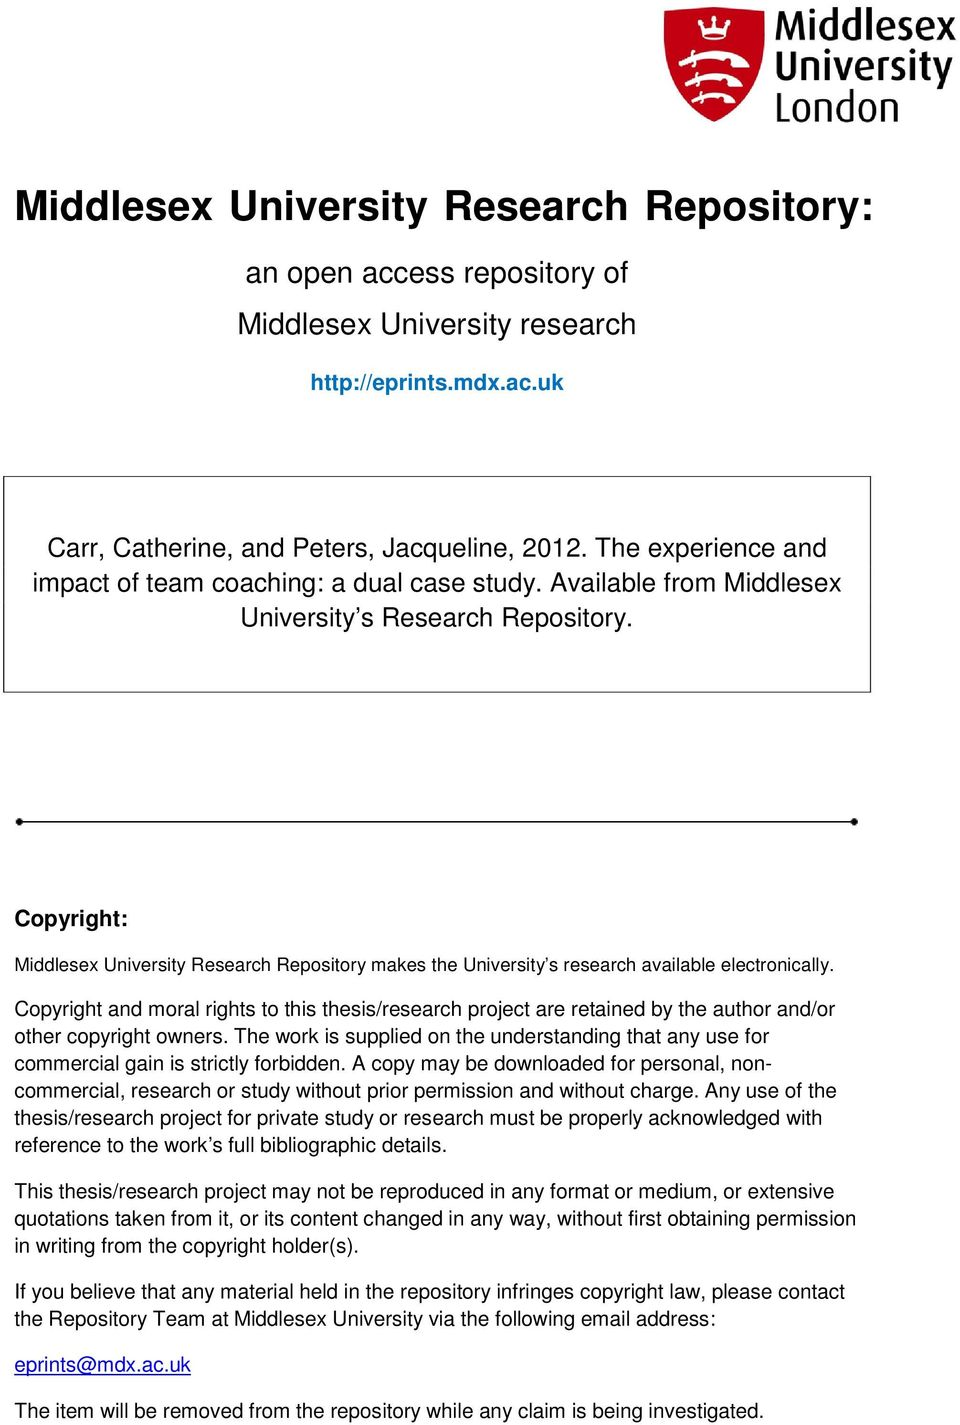 iheid thesis repository